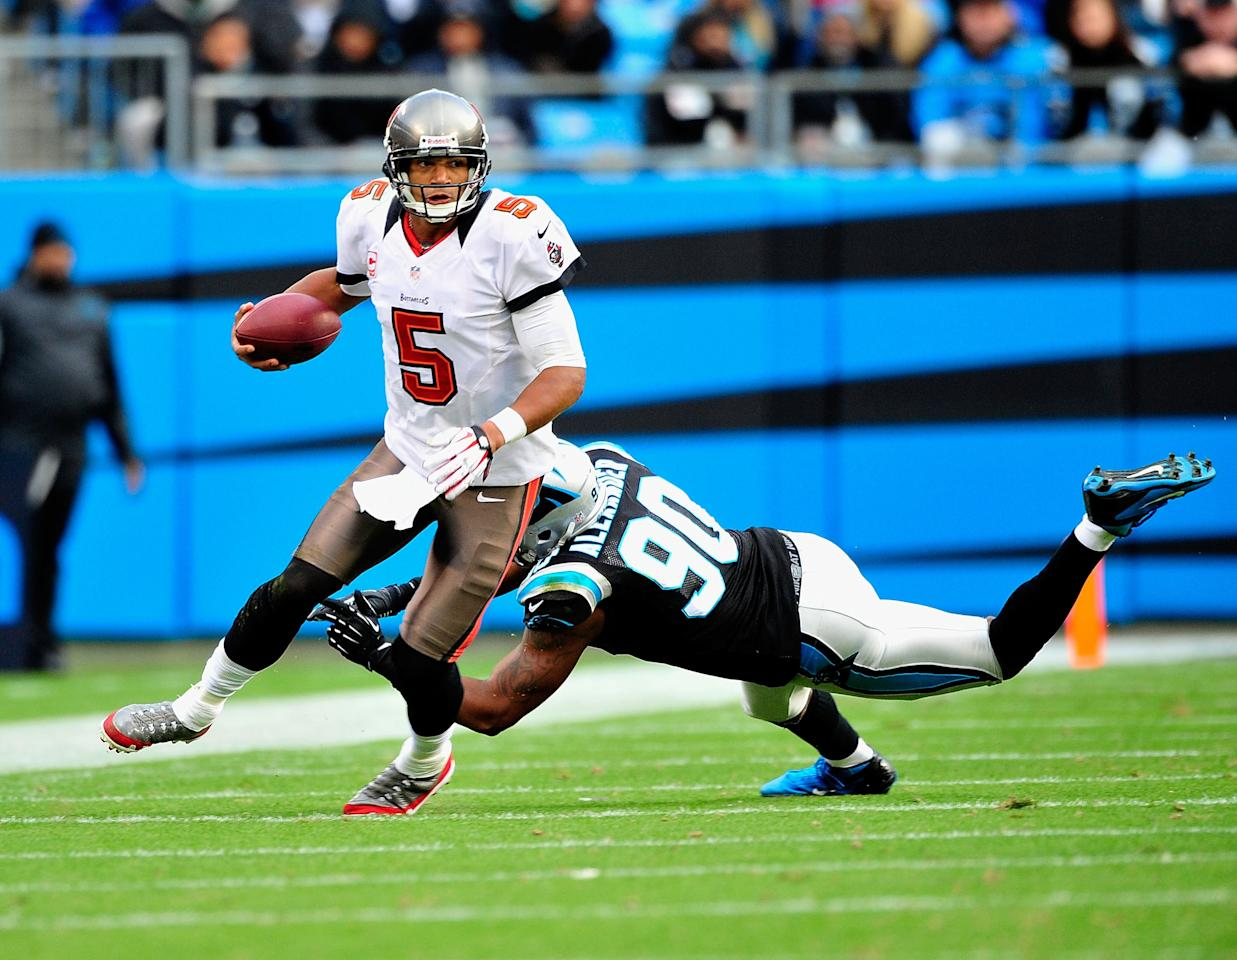 CHARLOTTE, NC - NOVEMBER 18:  Frank Alexander #90 of the Carolina Panthers misses the tackle as Josh Freeman #5 of the Tampa Bay Buccaneers scrambles out of the pocket during play at Bank of America Stadium on November 18, 2012 in Charlotte, North Carolina. Tampa Bay won 27-21 in overtime.  (Photo by Grant Halverson/Getty Images)